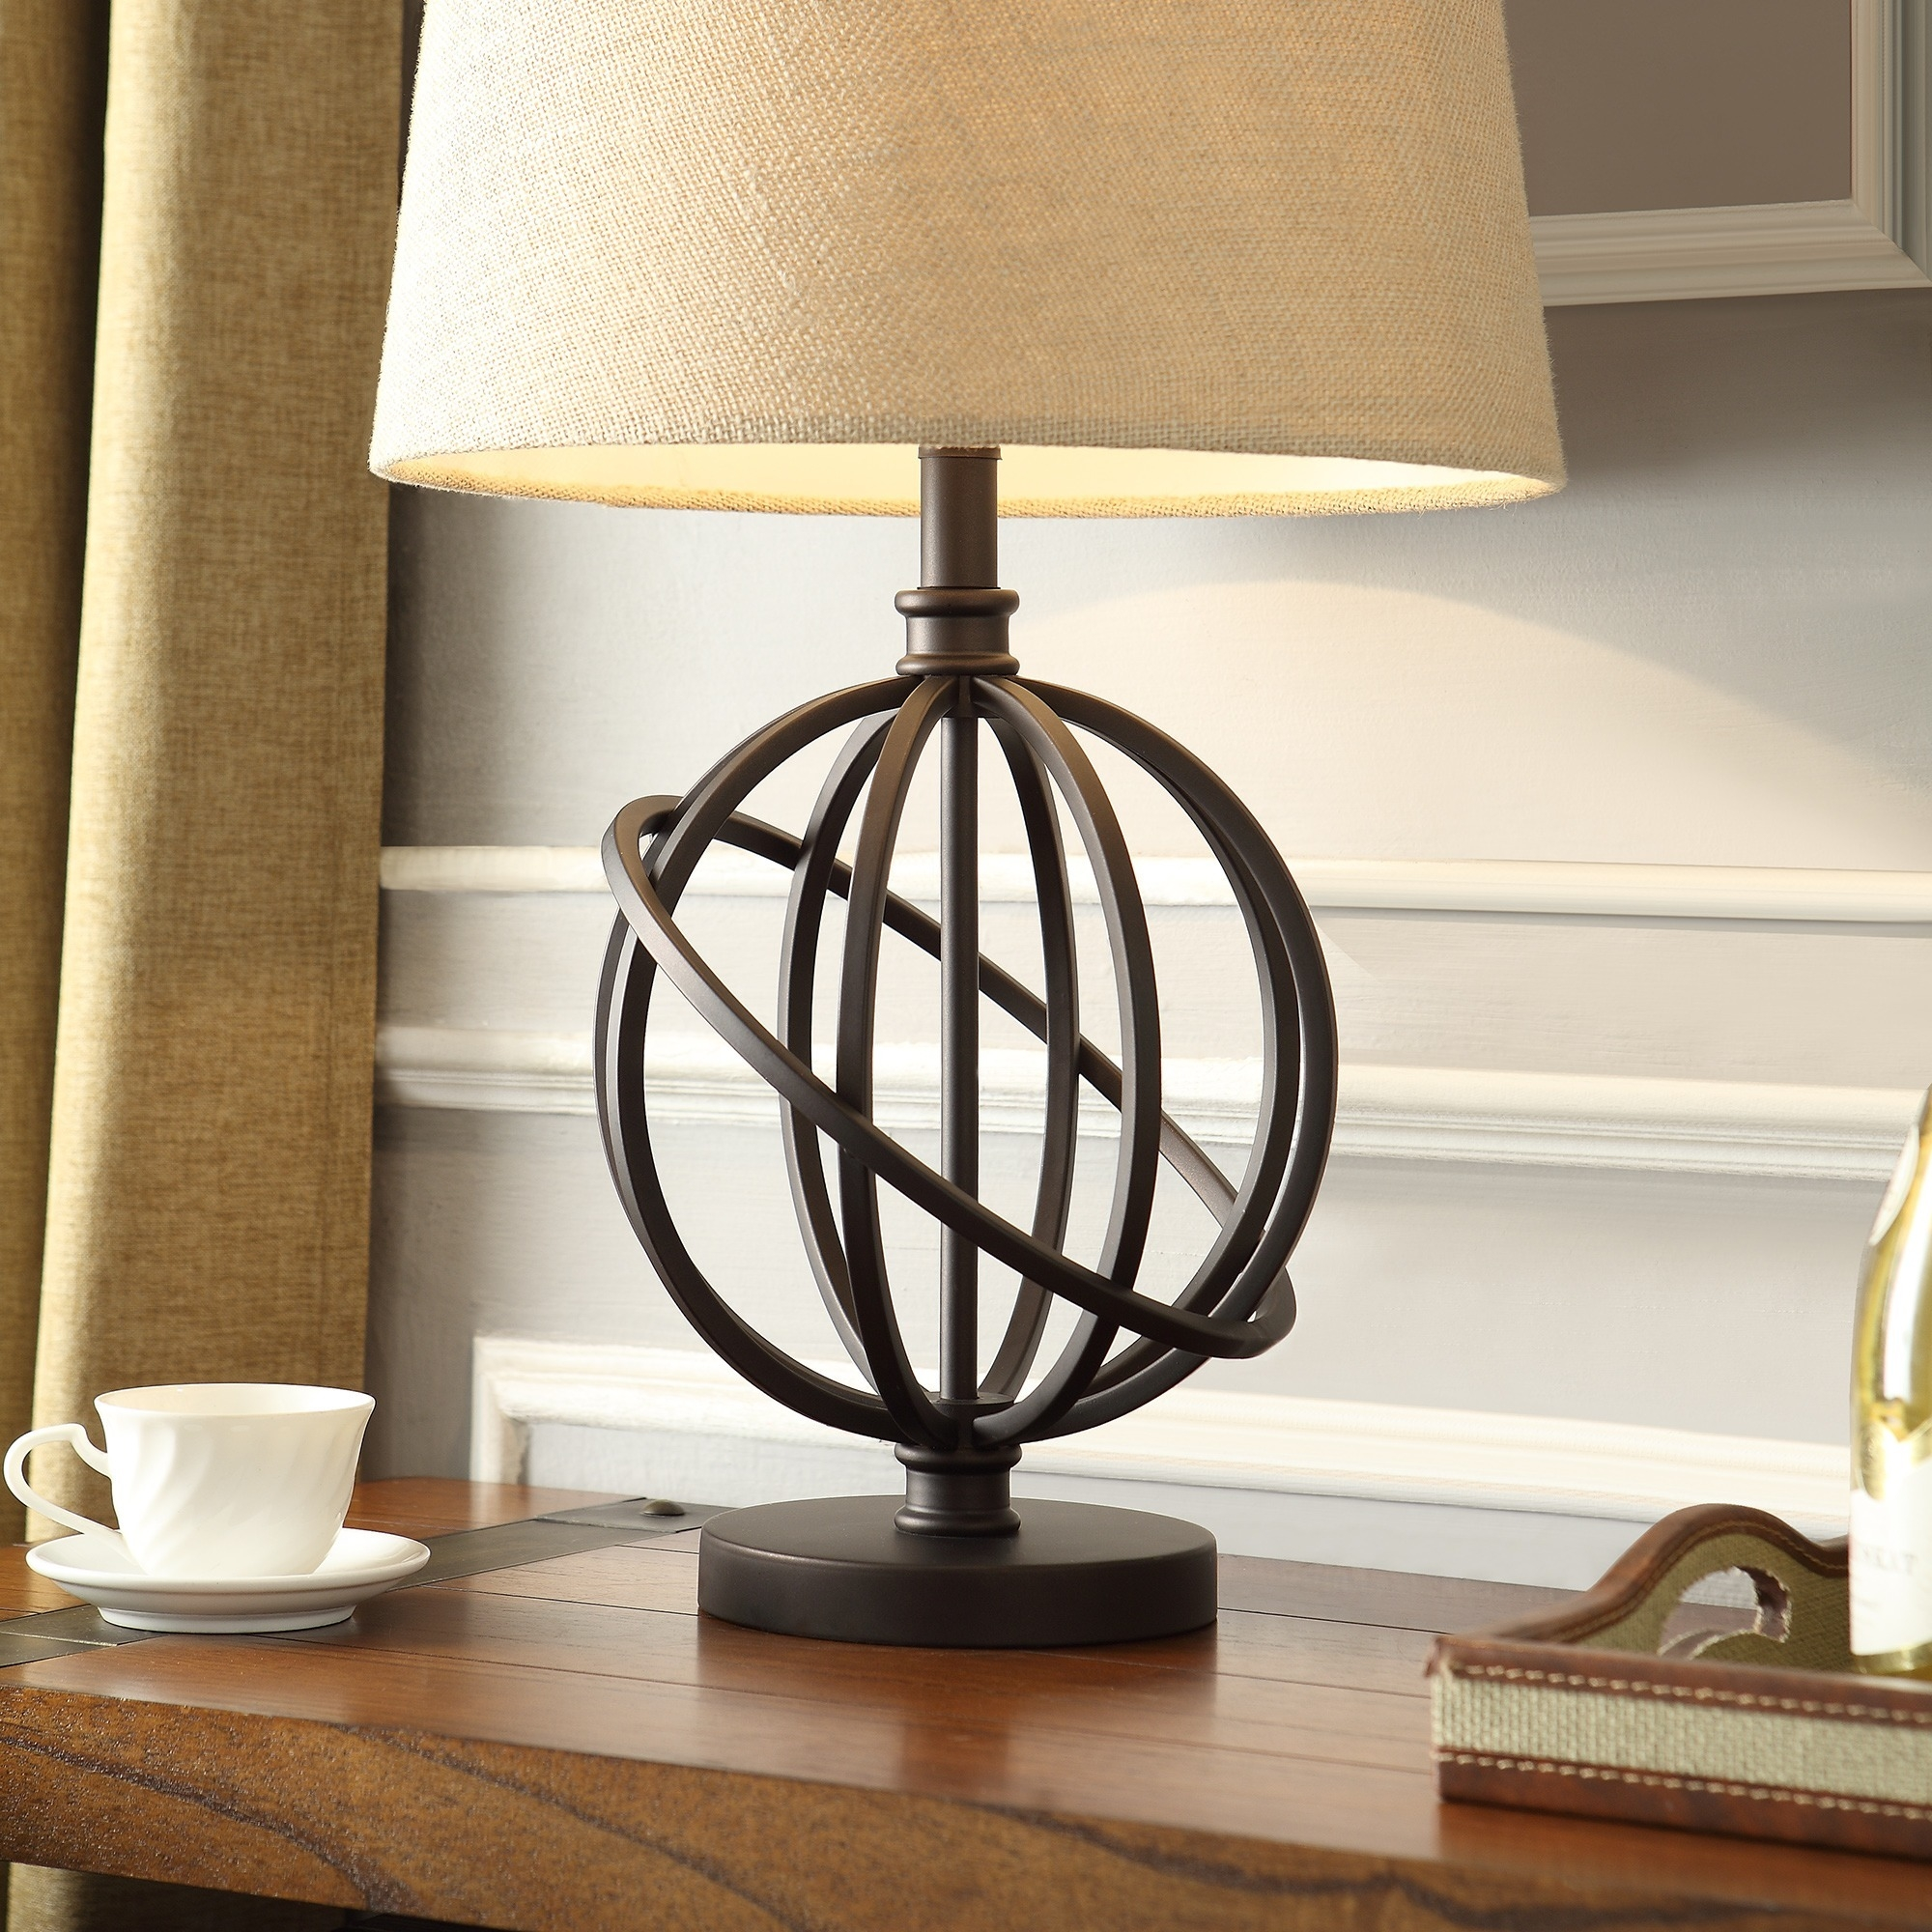 halcyon accent table lamp ideas lighting enchanting with seattle home patio loveseat cover farm style sofa kmart camping gold and glass coffee nate berkus round marble top unusual